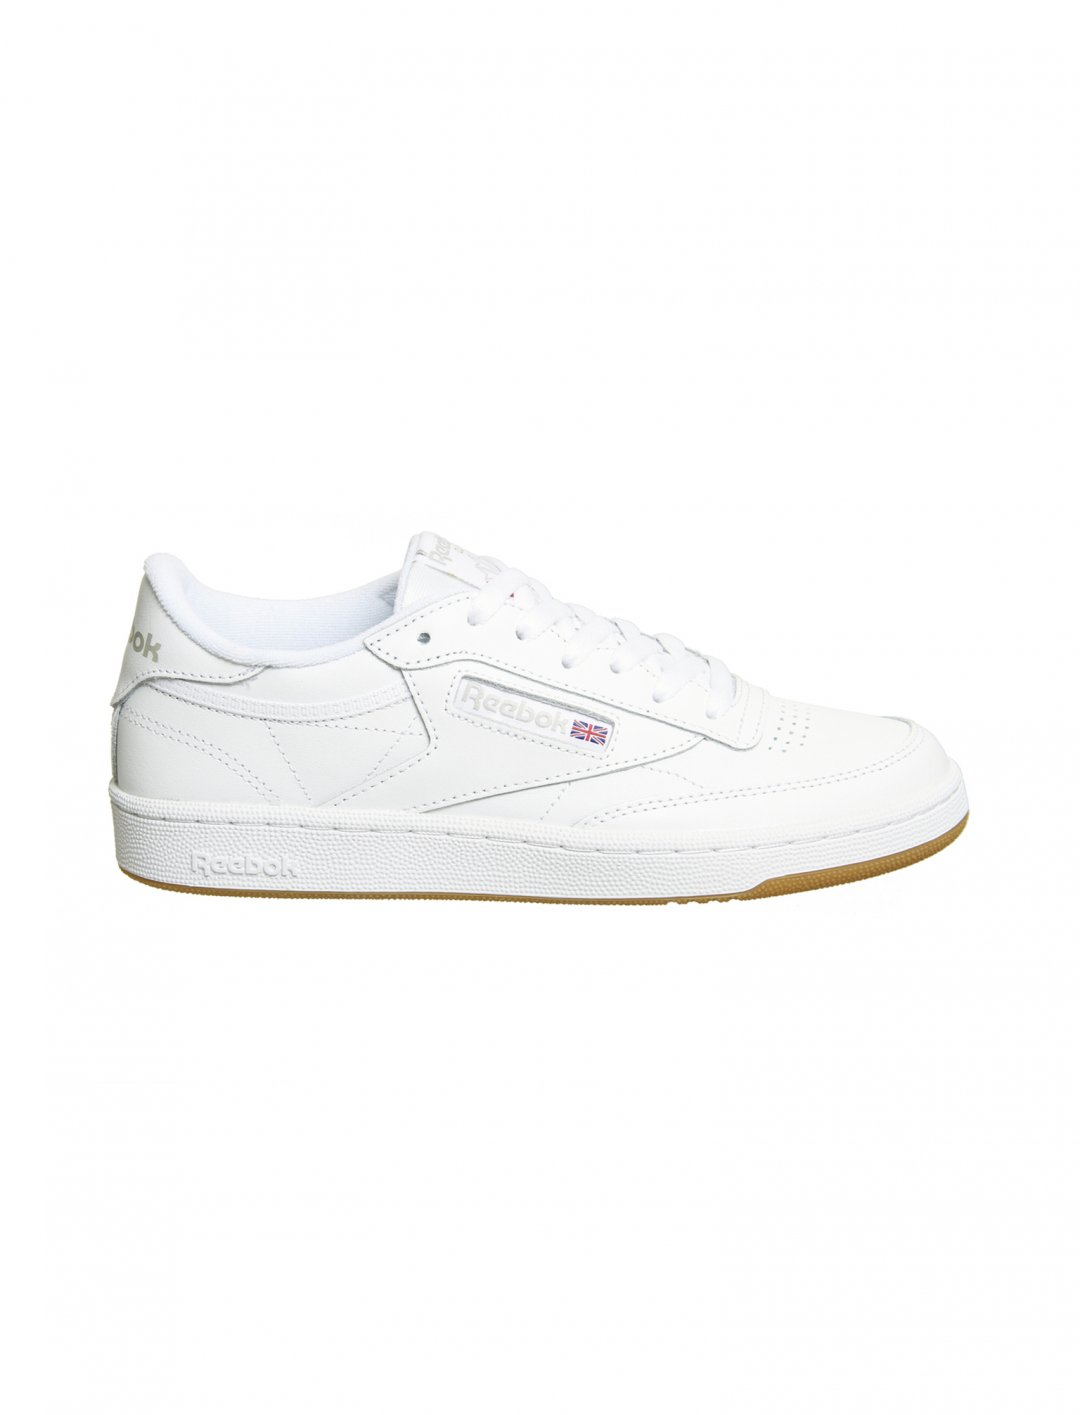 "Club C 85 Trainers {""id"":12,""product_section_id"":1,""name"":""Shoes"",""order"":12} Reebok"